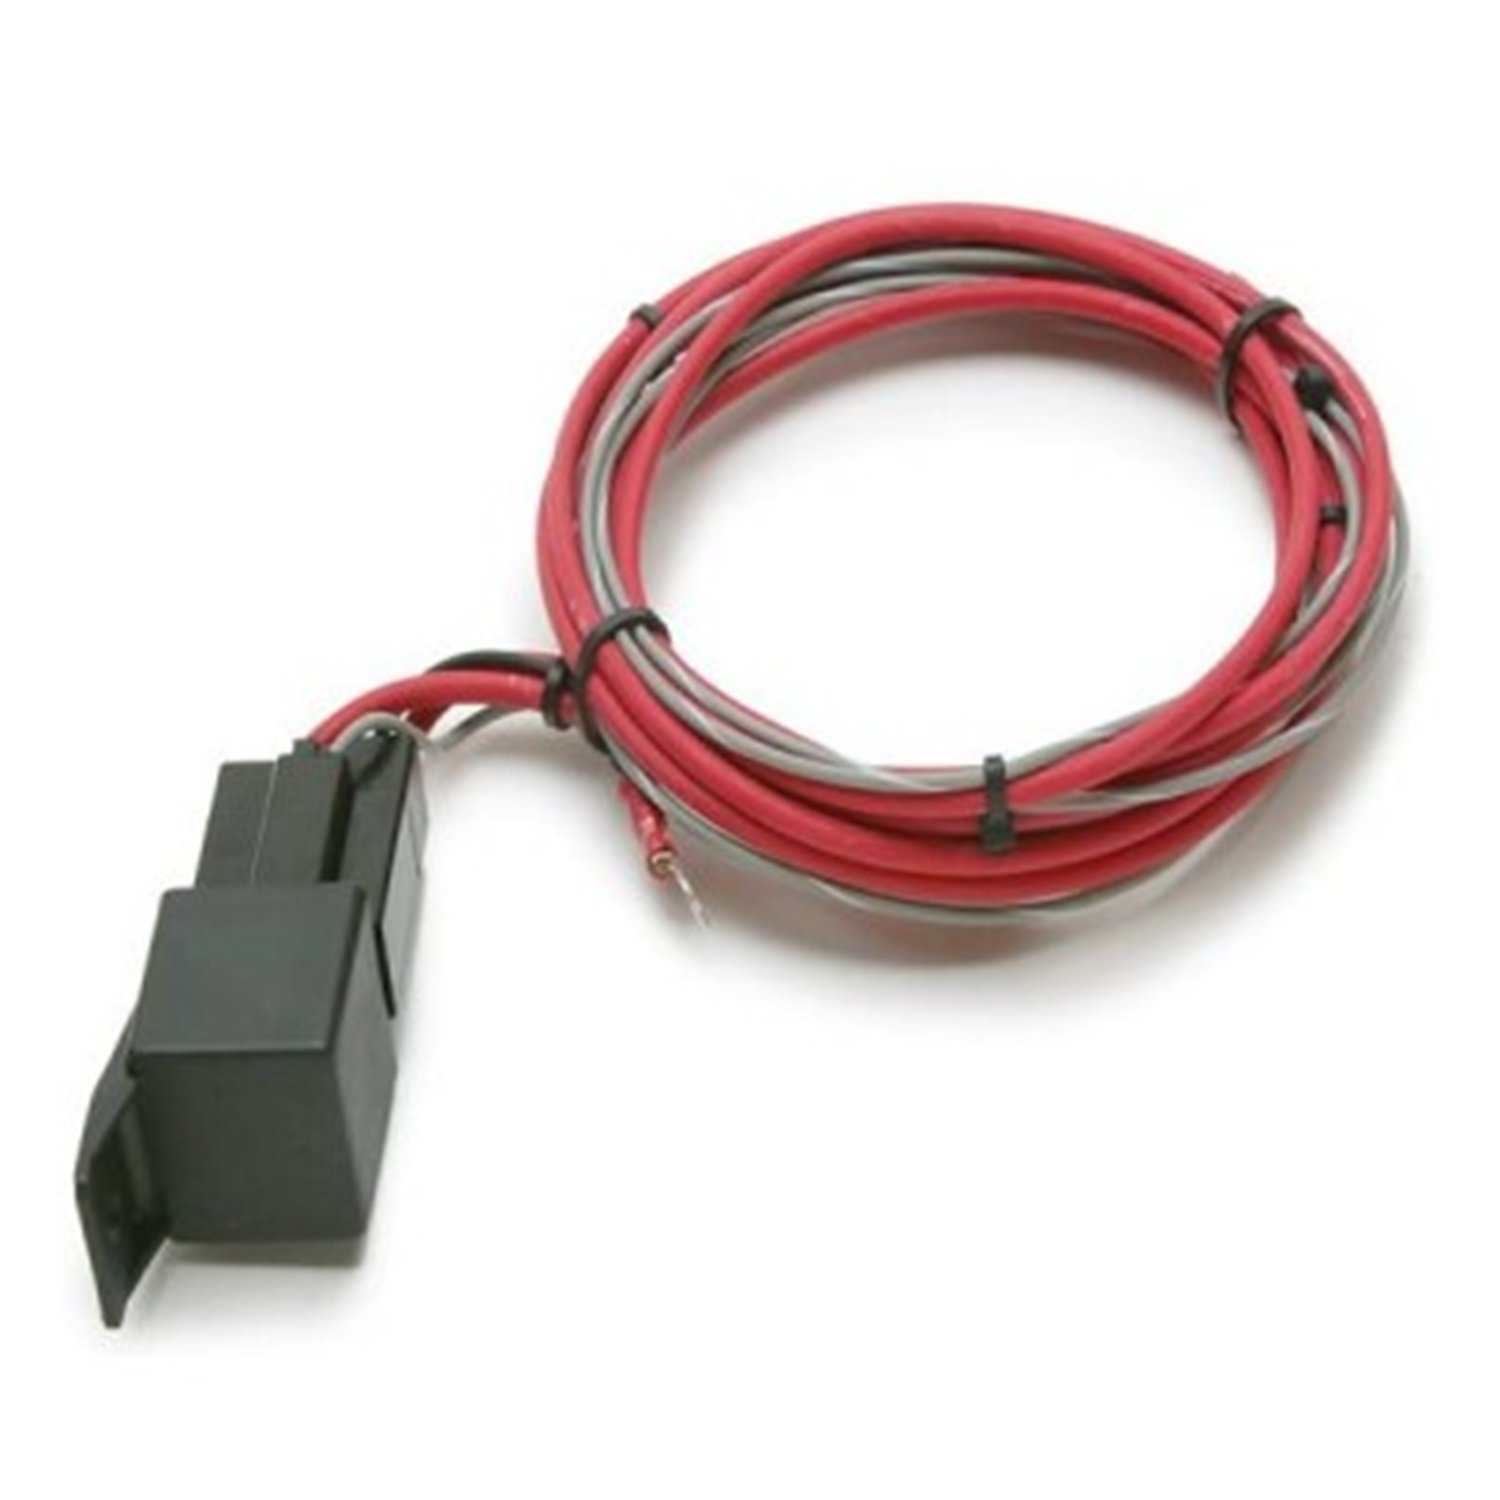 61Wk1U0jD0L._SL1500_ amazon com painless 30100 (70 amp) fan relay kit automotive painless wiring harness rebate at mifinder.co